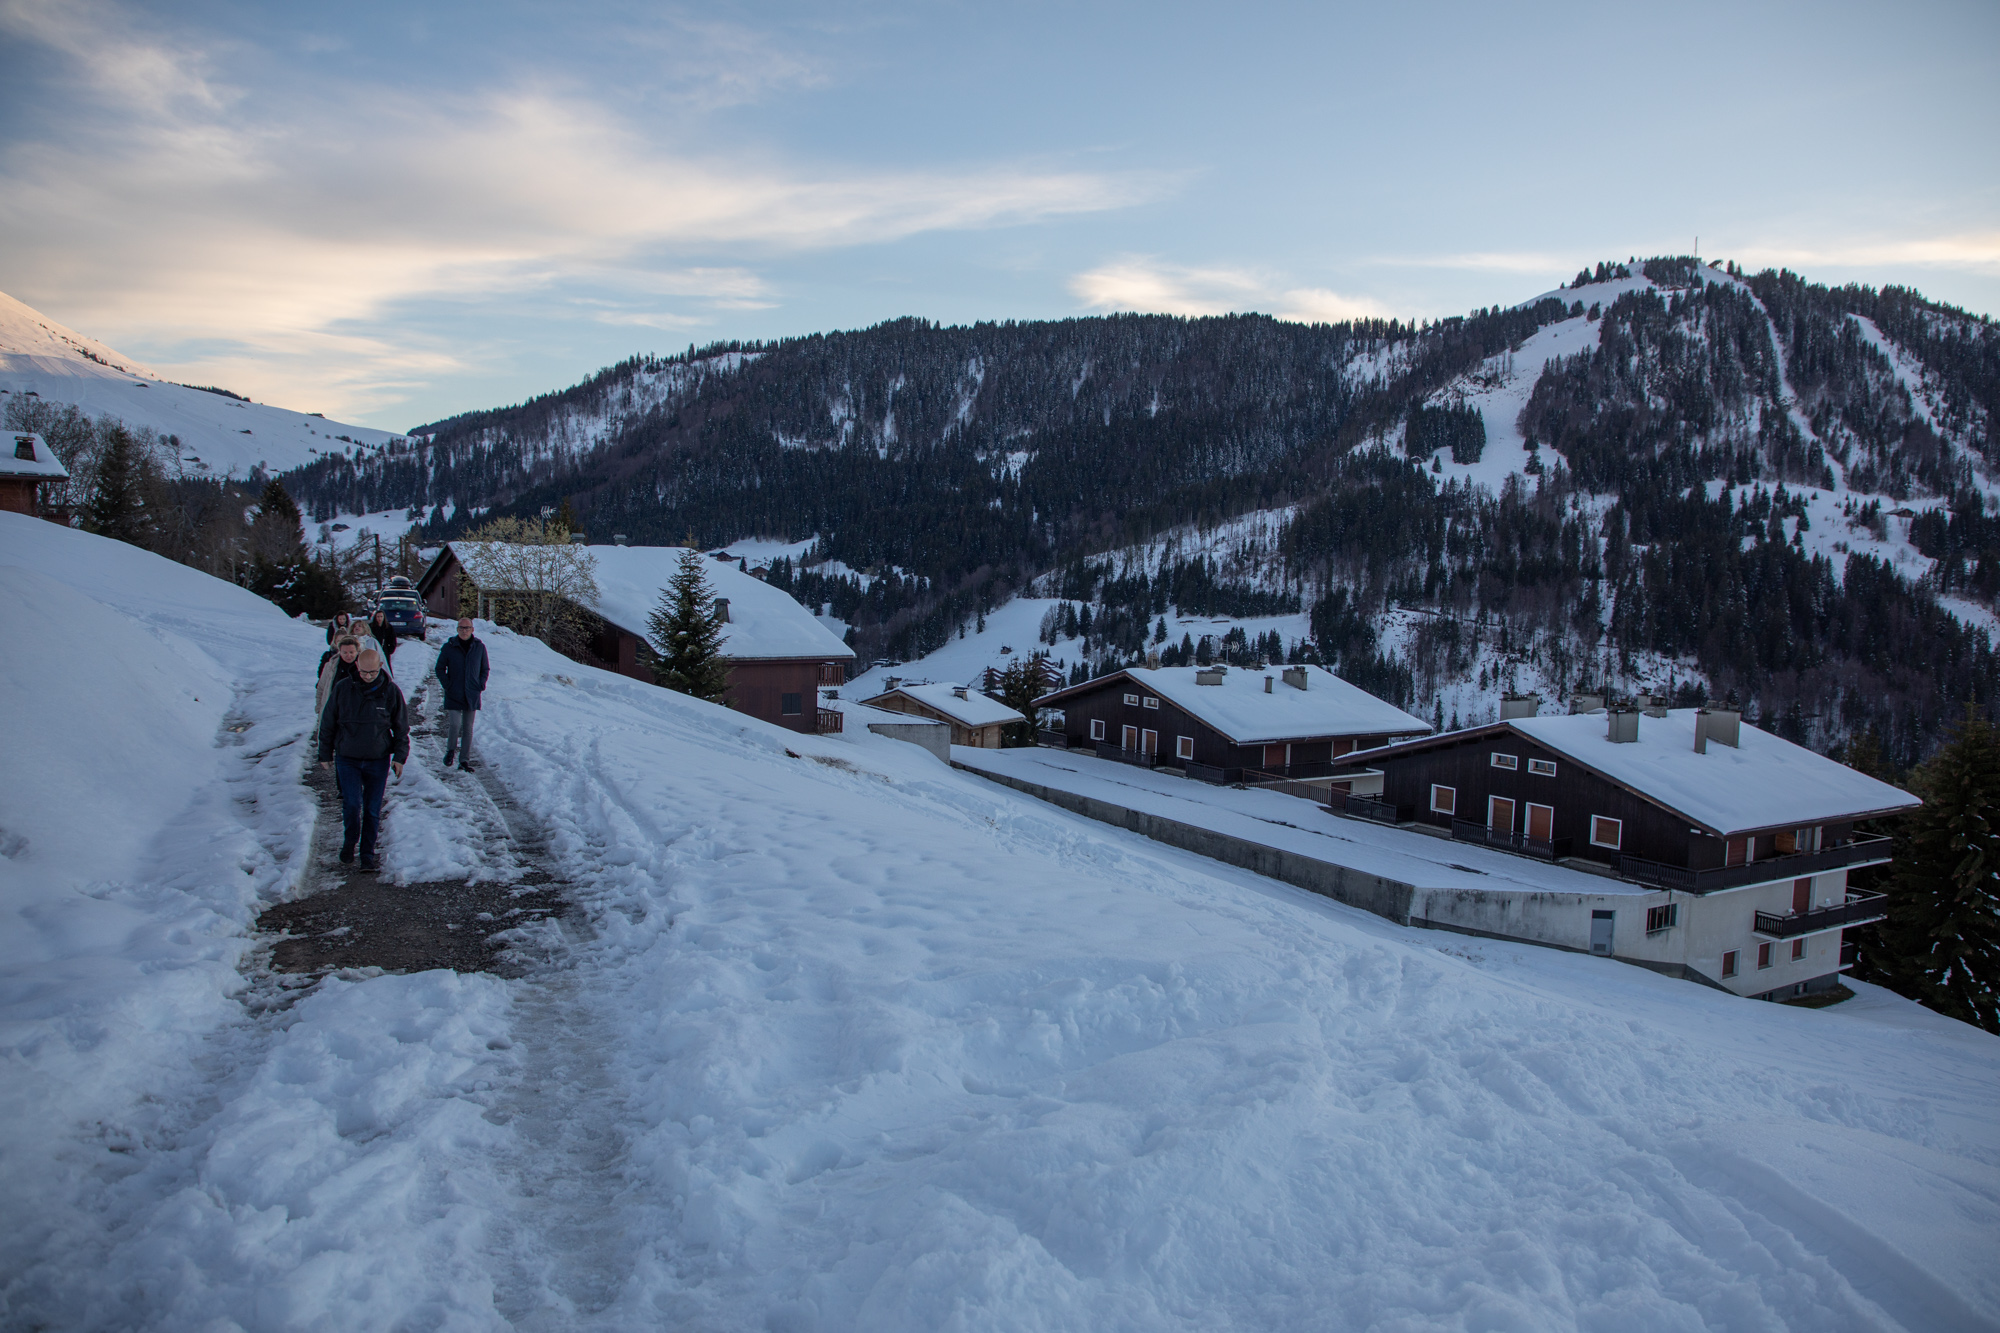 Break_The_Ice_LaClusaz_2019_web-7264.jpg